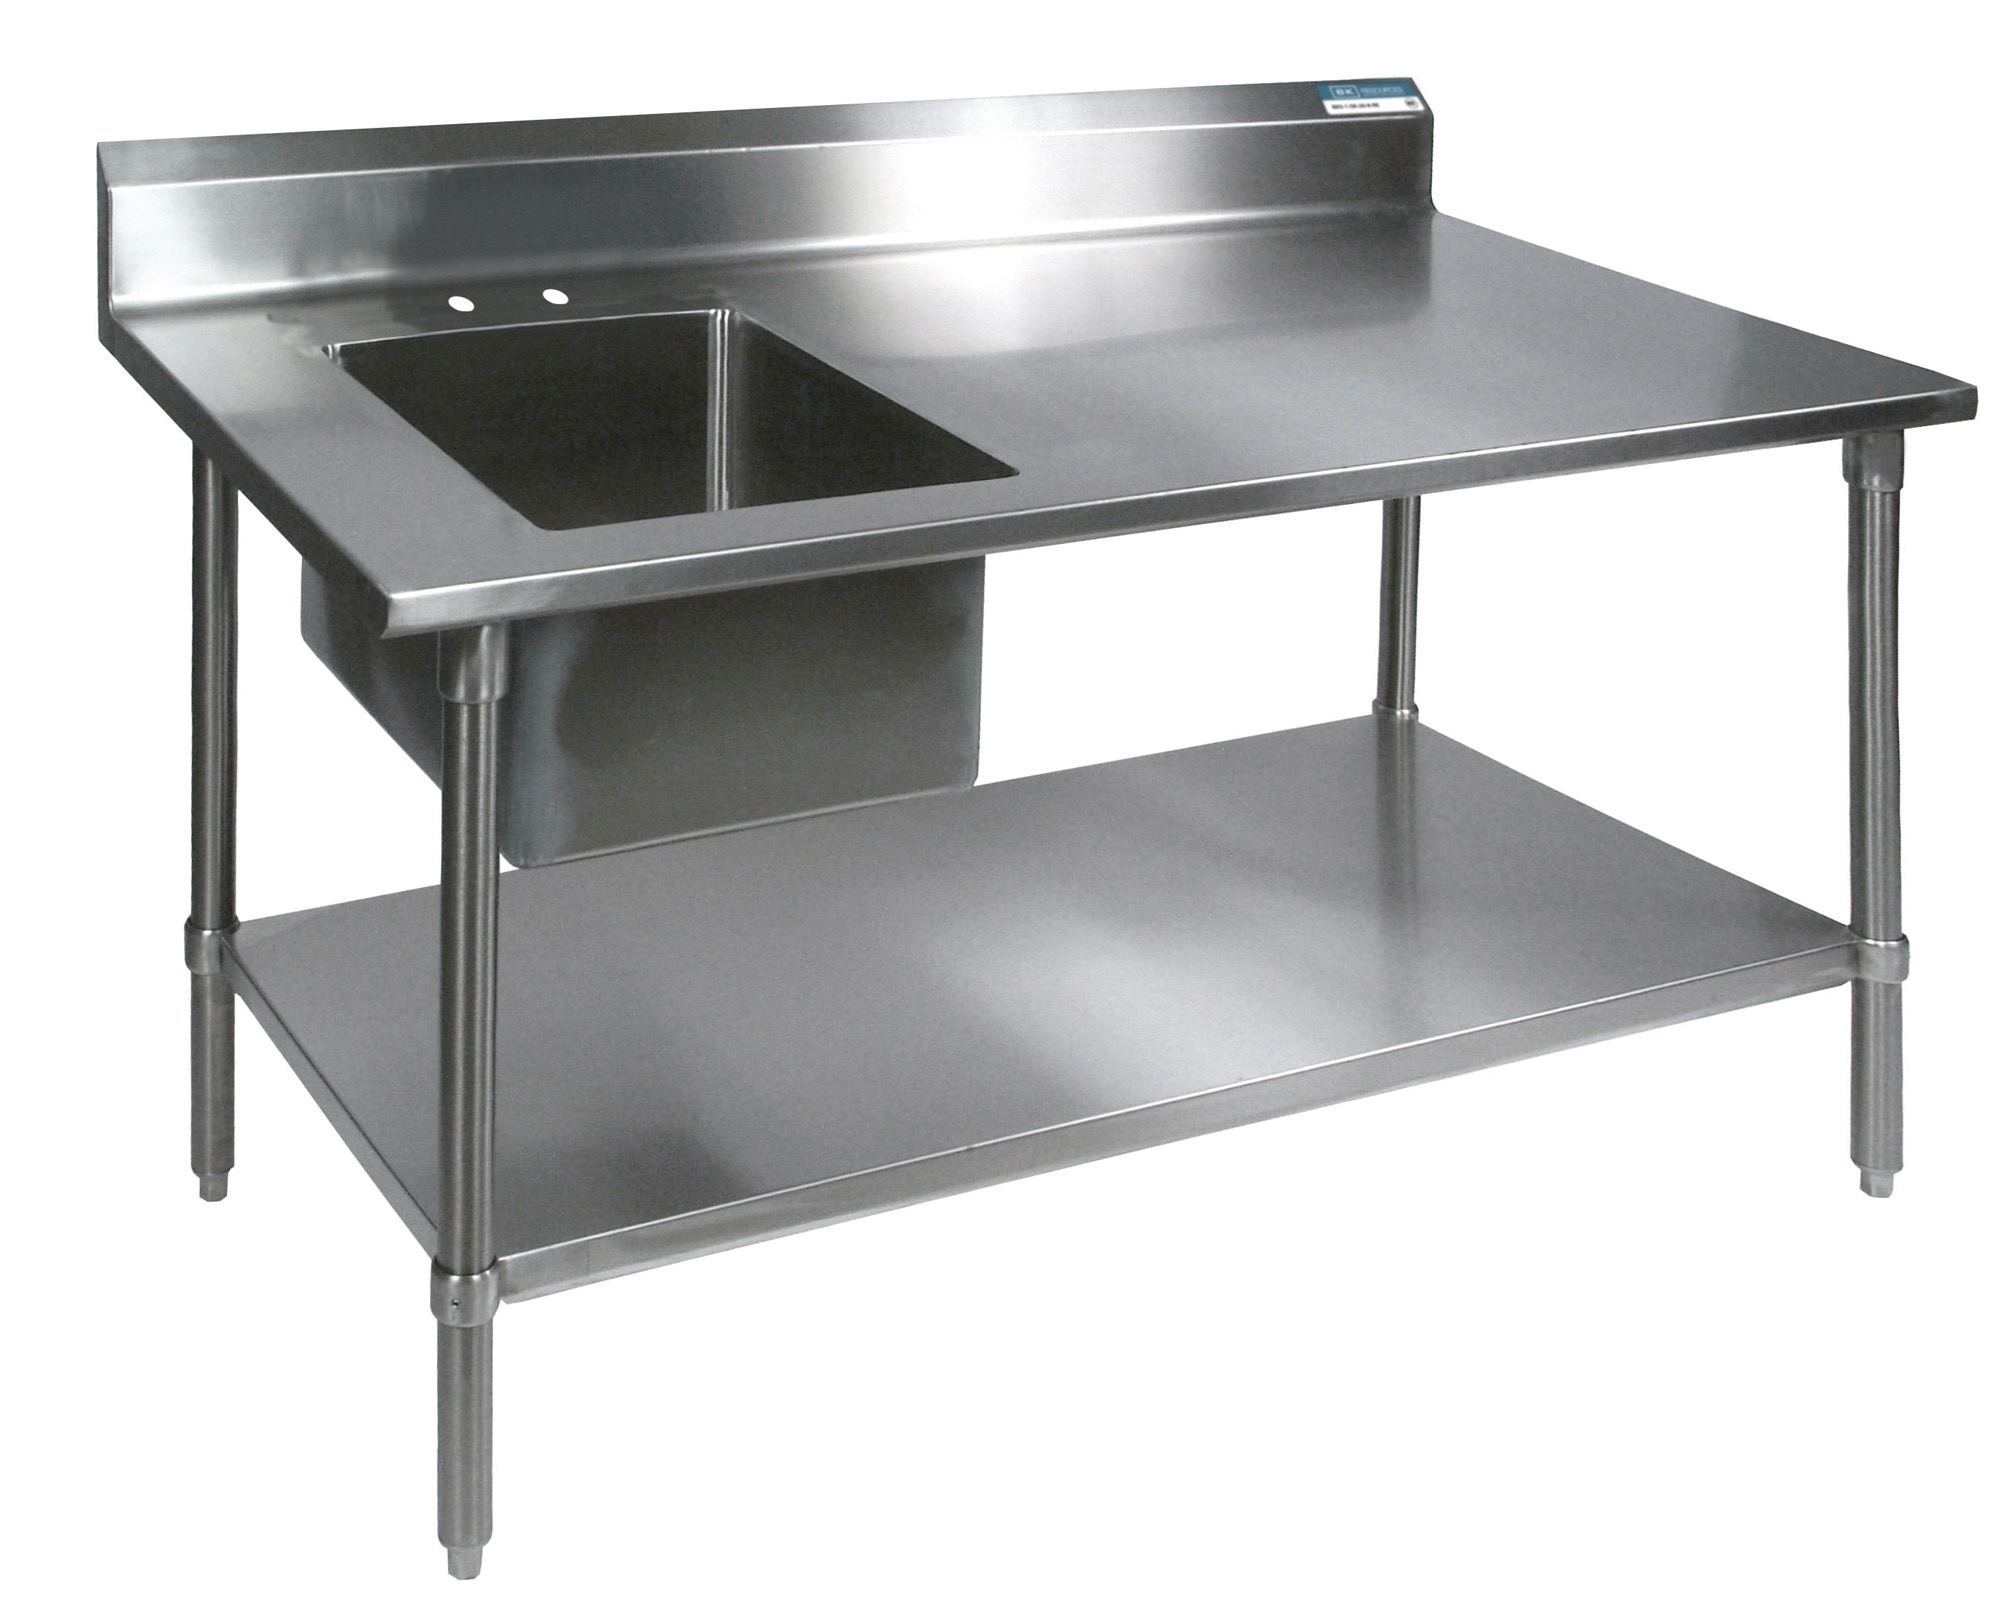 Diversified Woodcrafts Stainless Steel Prep Table, Sink, and Stainless Undershelf